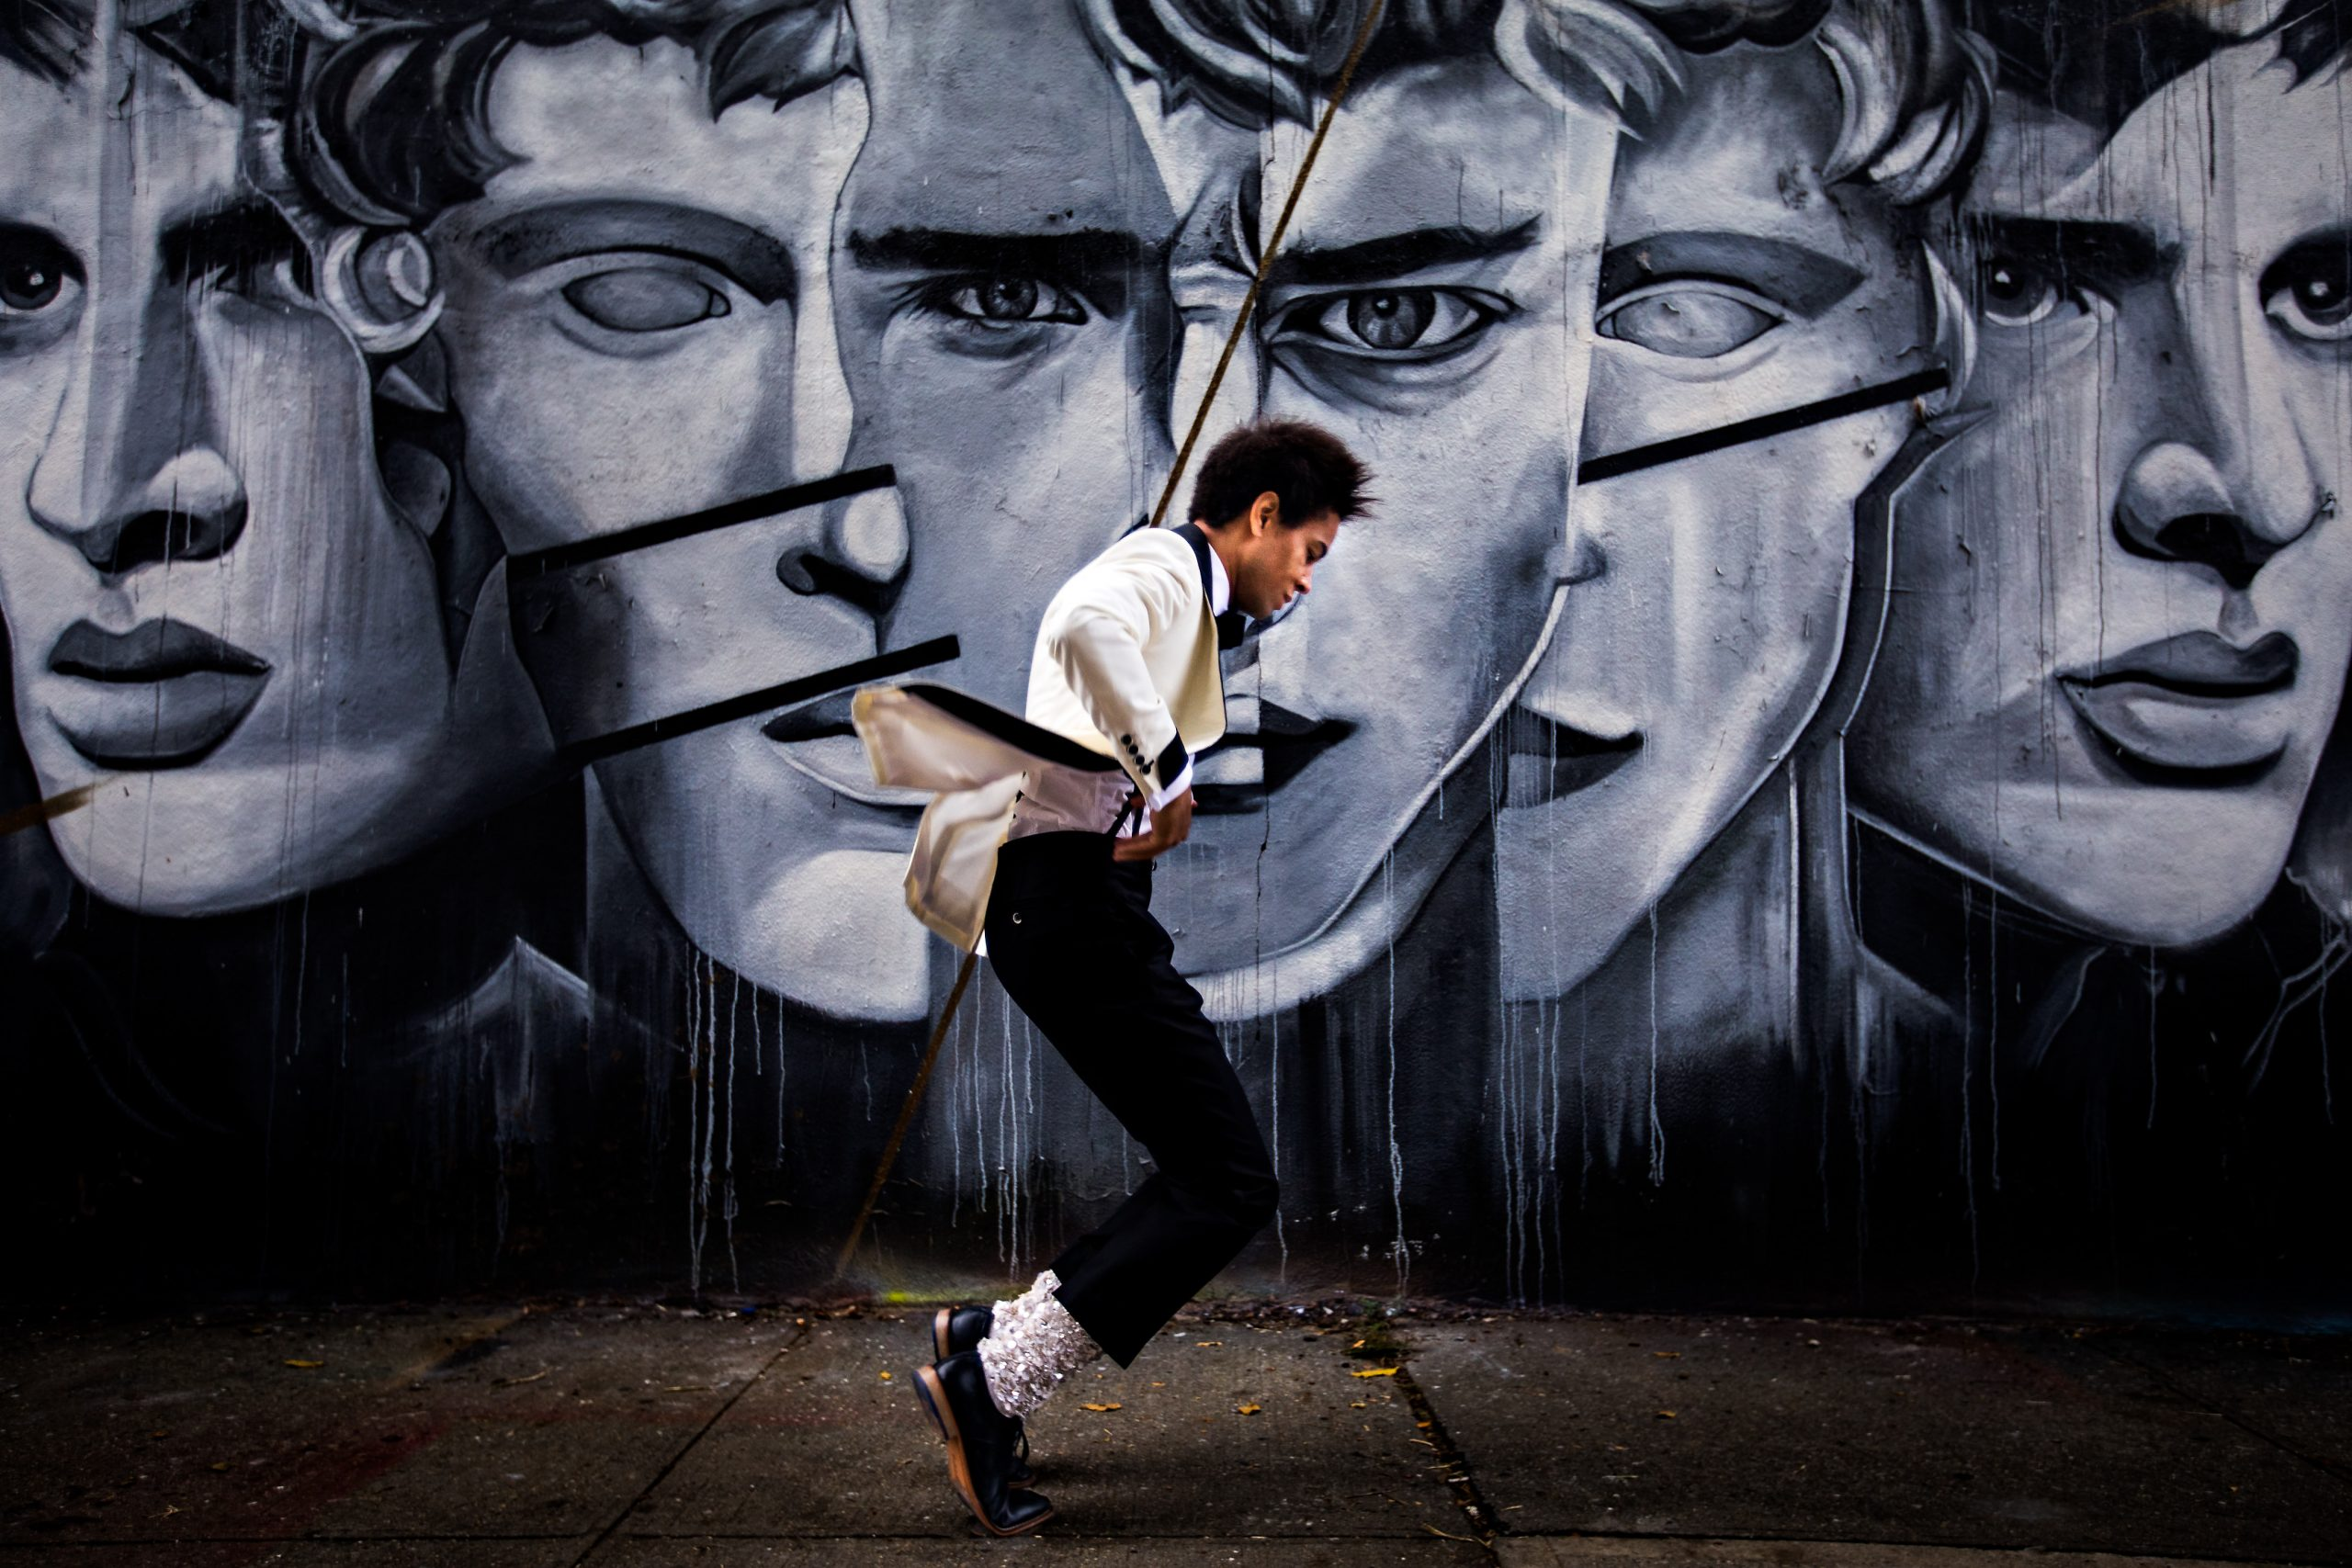 A groom dances in front of a mural of faces